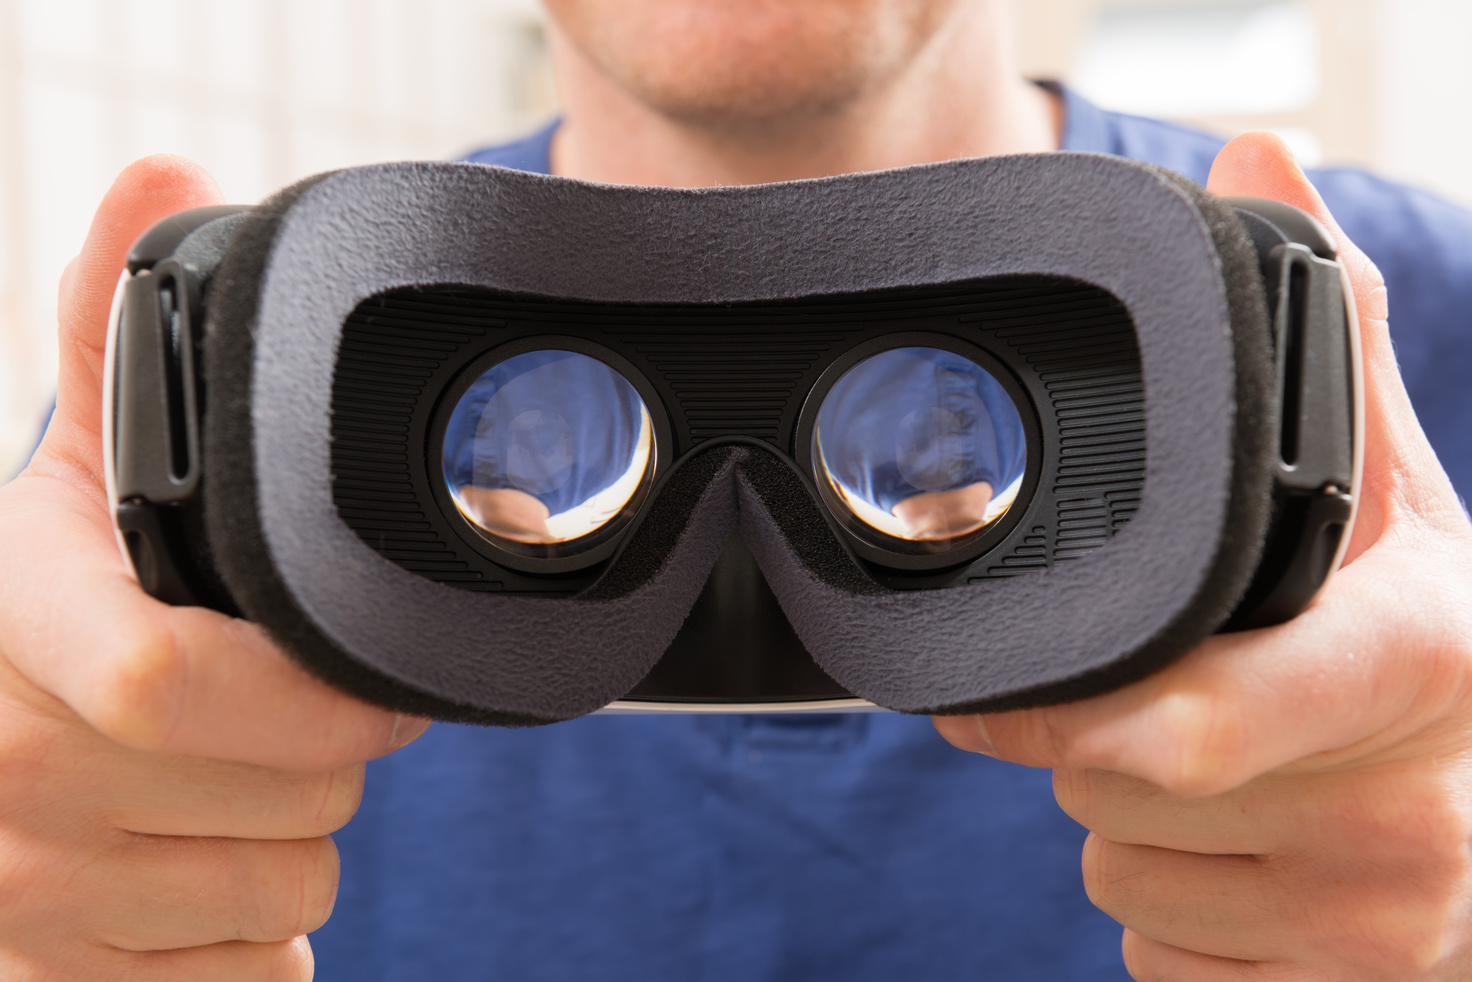 Virtual reality is a buzz word everyone throws around when they want to sound techy. What is it though? Where did it all start and where is it all heading?